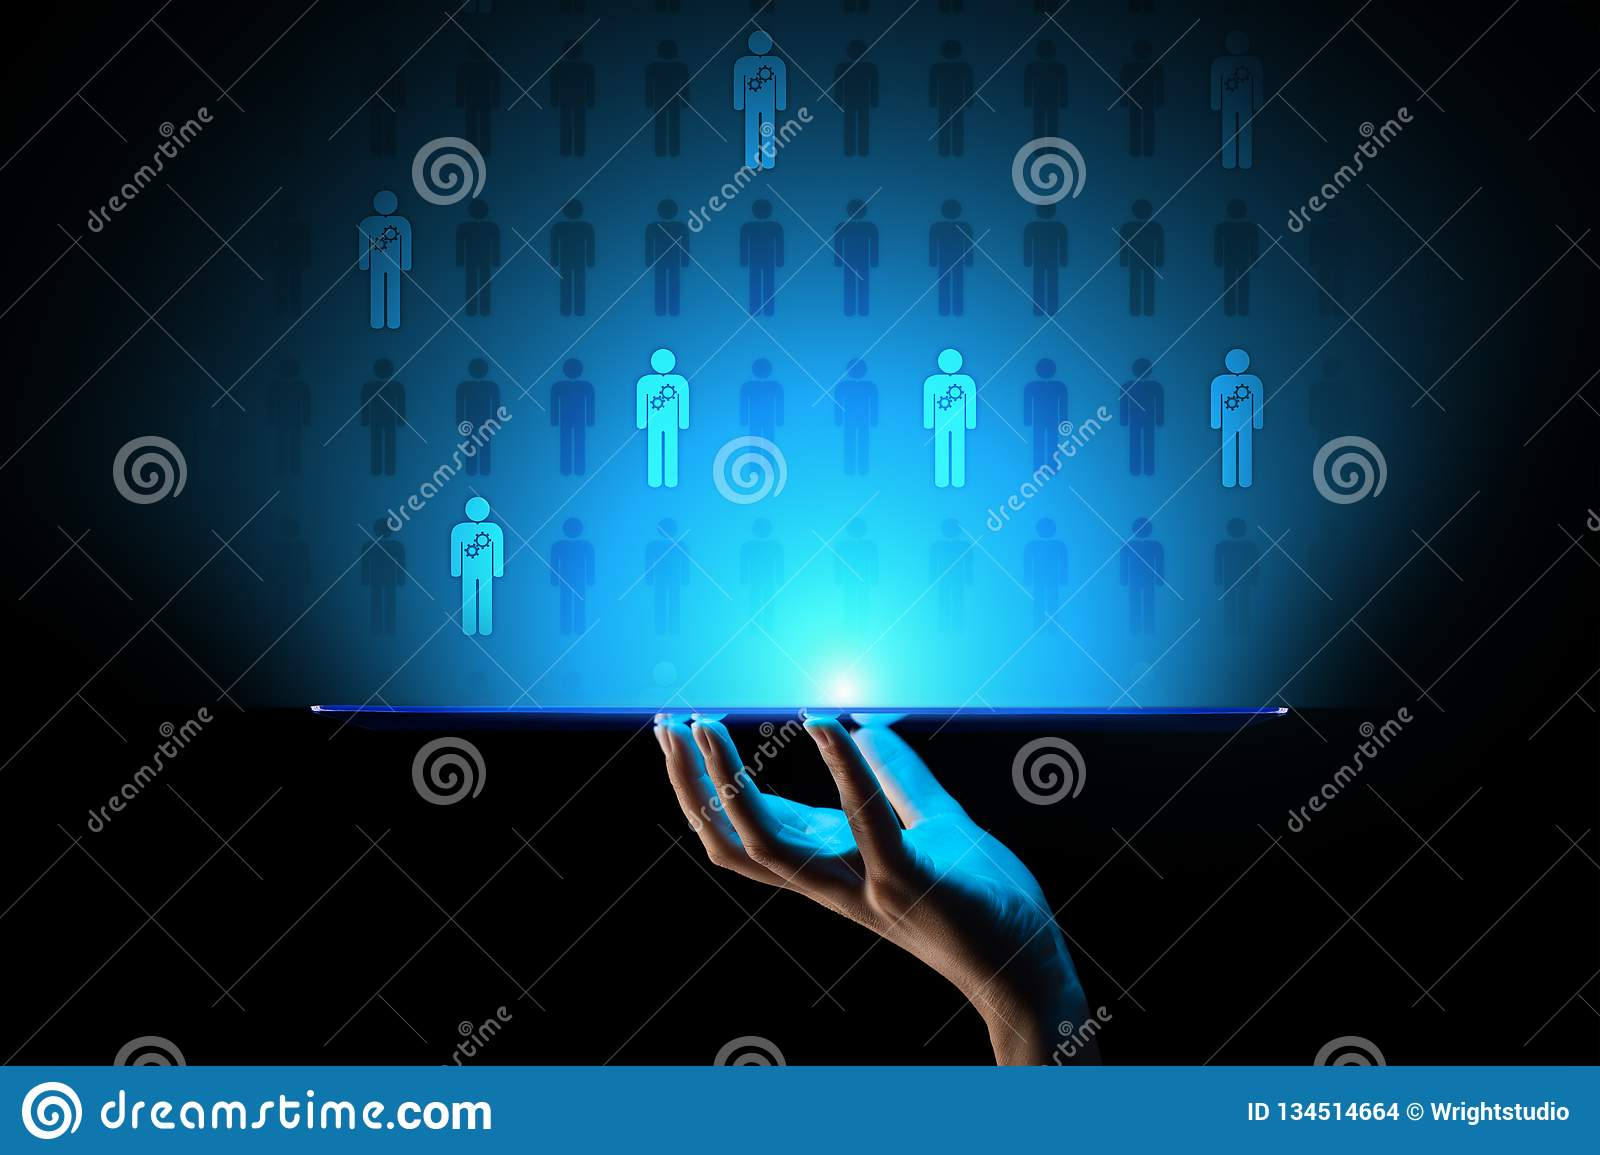 HR Human resources management, Team building, Recruitment, Talent wanted, Yearning, Employment Business concept.